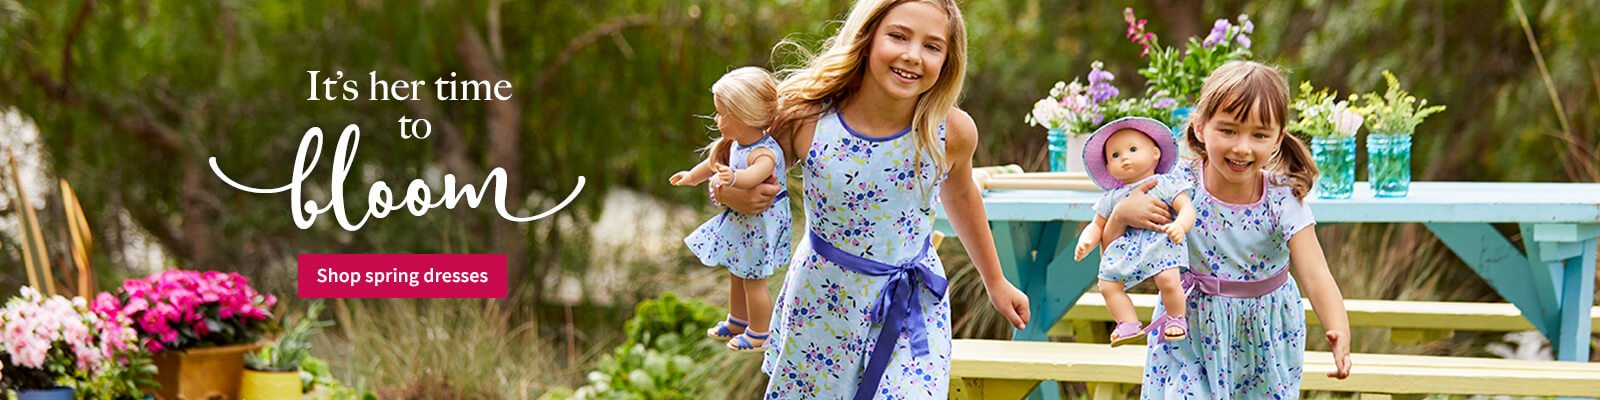 It's her time to bloom. Shop spring dresses.